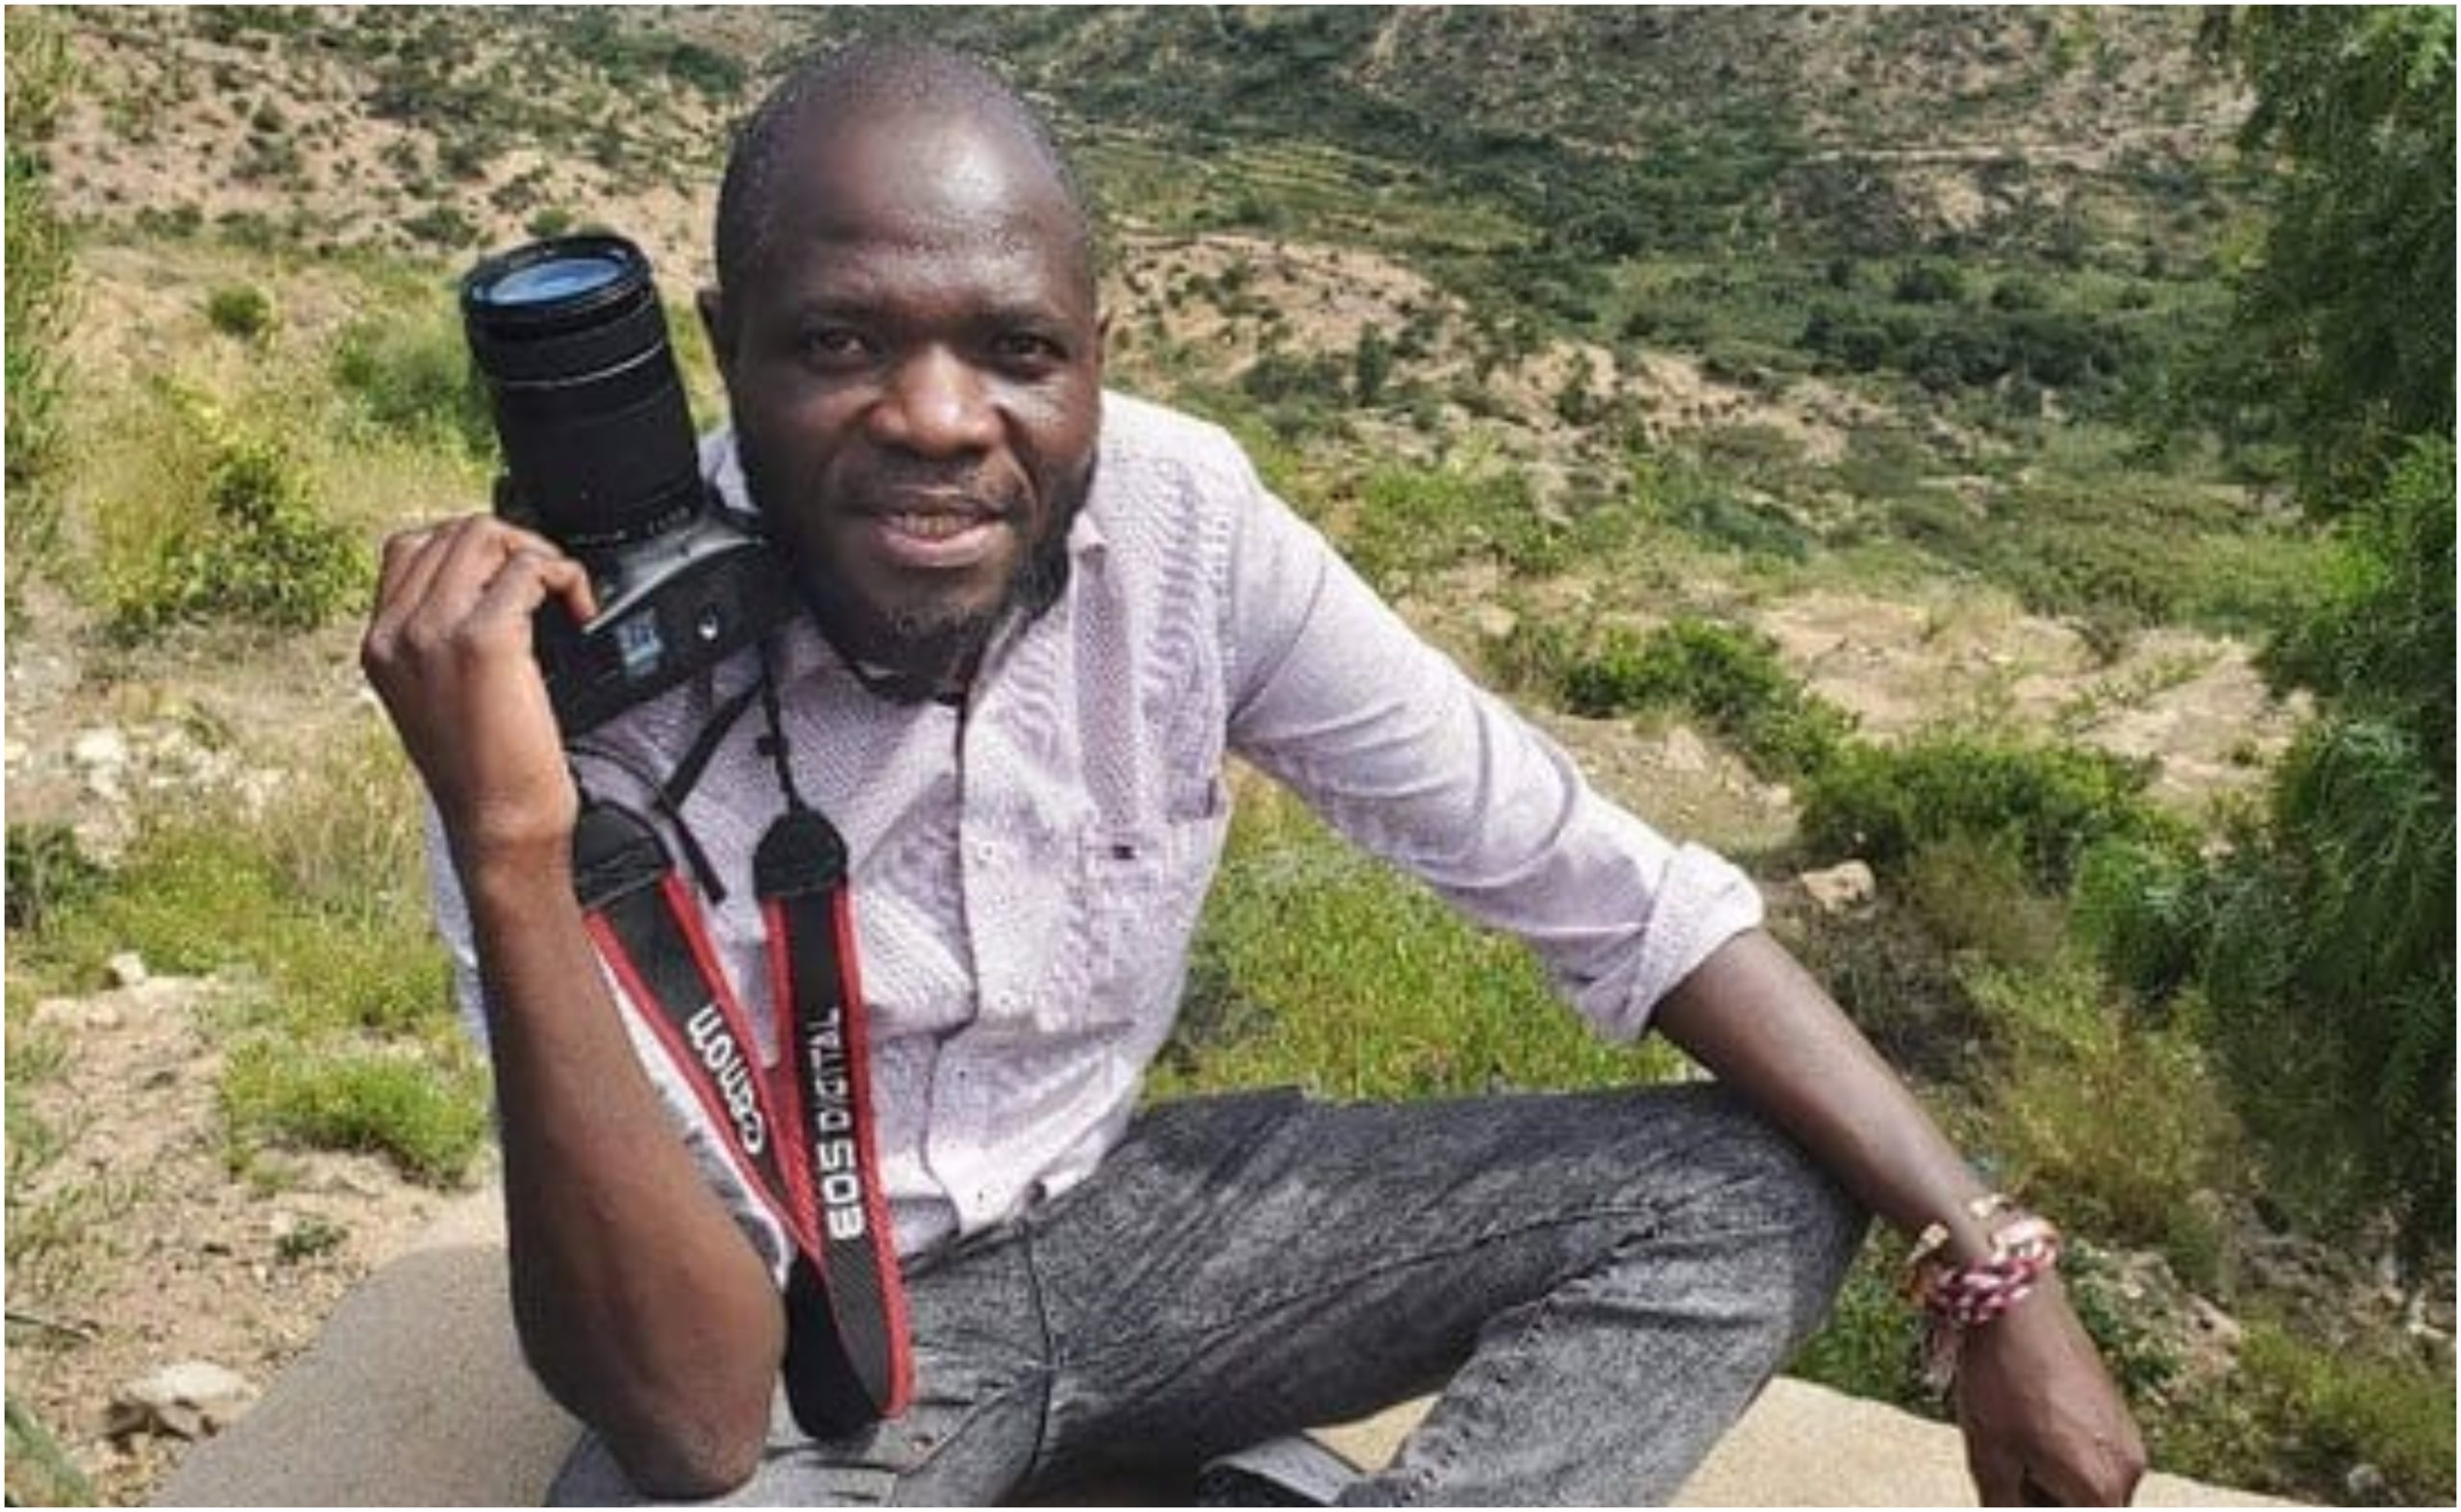 Renowned journalist Yassin Juma gets major breakthrough after spending 50 days in jail